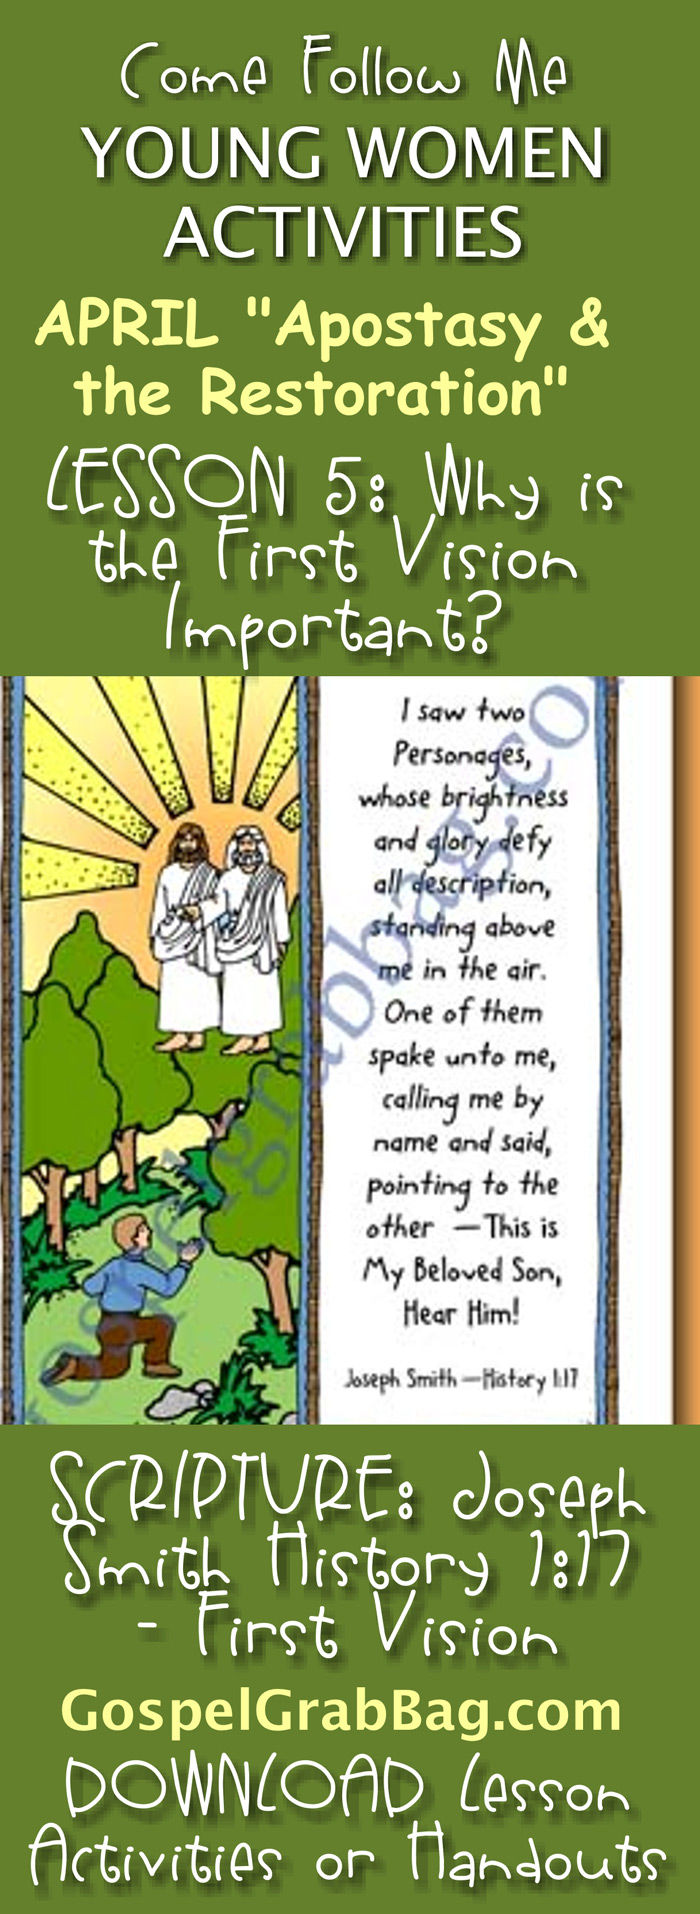 """FIRST VISION - RESTORATION: Come Follow Me – LDS Young Women Activities, APRIL Theme: """"The Apostasy and the Restoration"""", LESSON 5: Why is the First Vision important? handout for every lesson, SCRIPTURE POSTER: First Vision – Joseph Smith History 1:17, download from gospelgrabbag.com"""